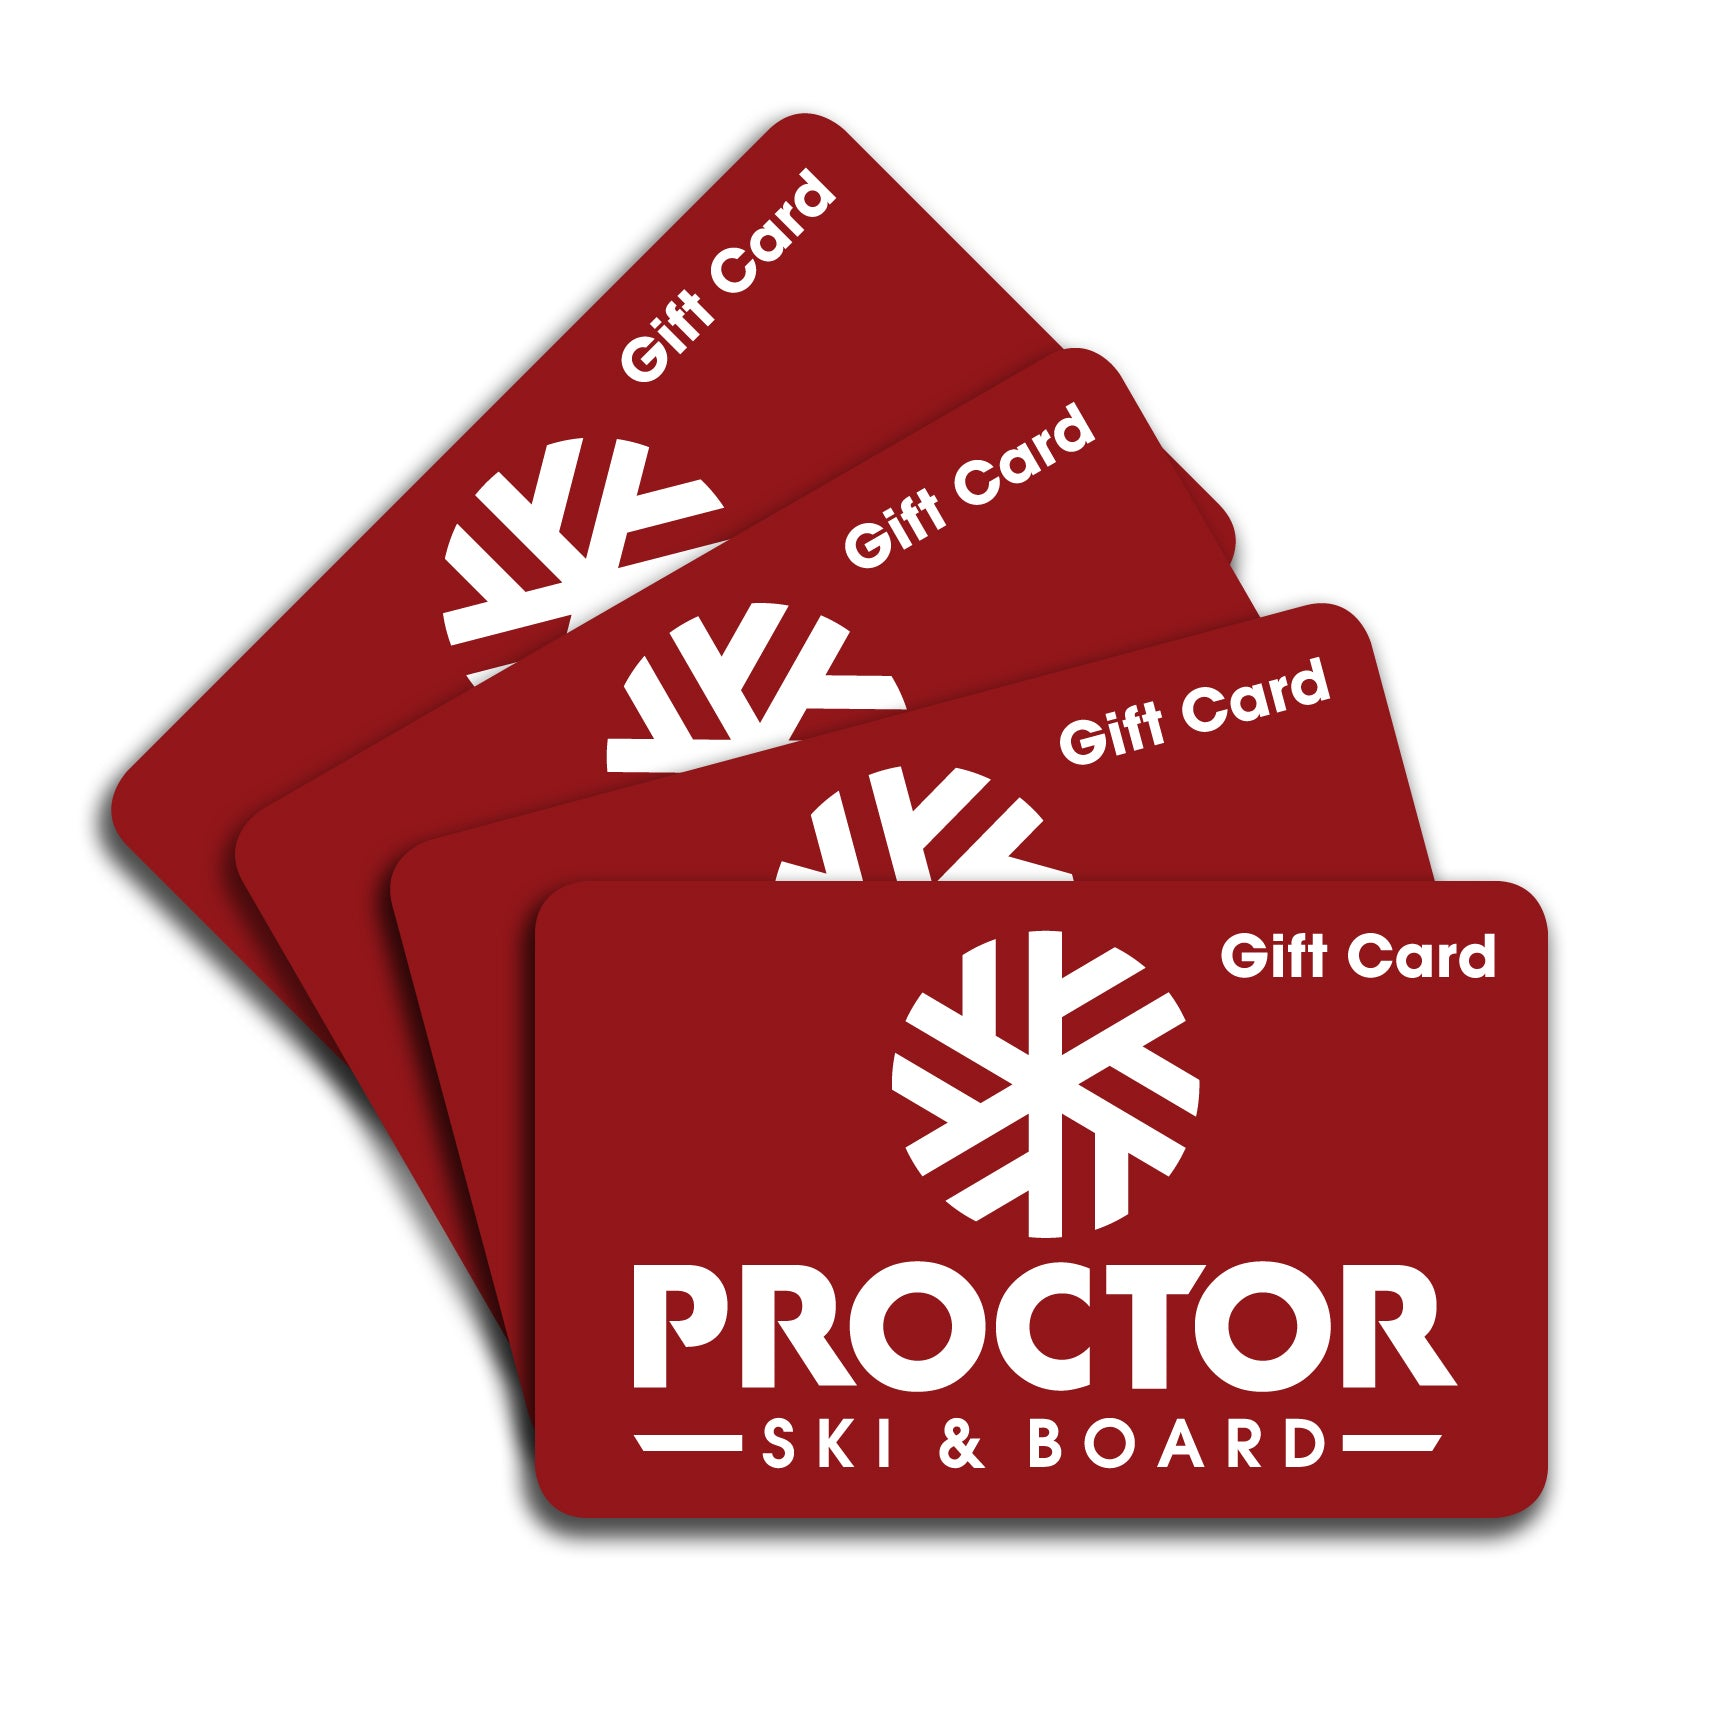 Gift card- Skis & Boards